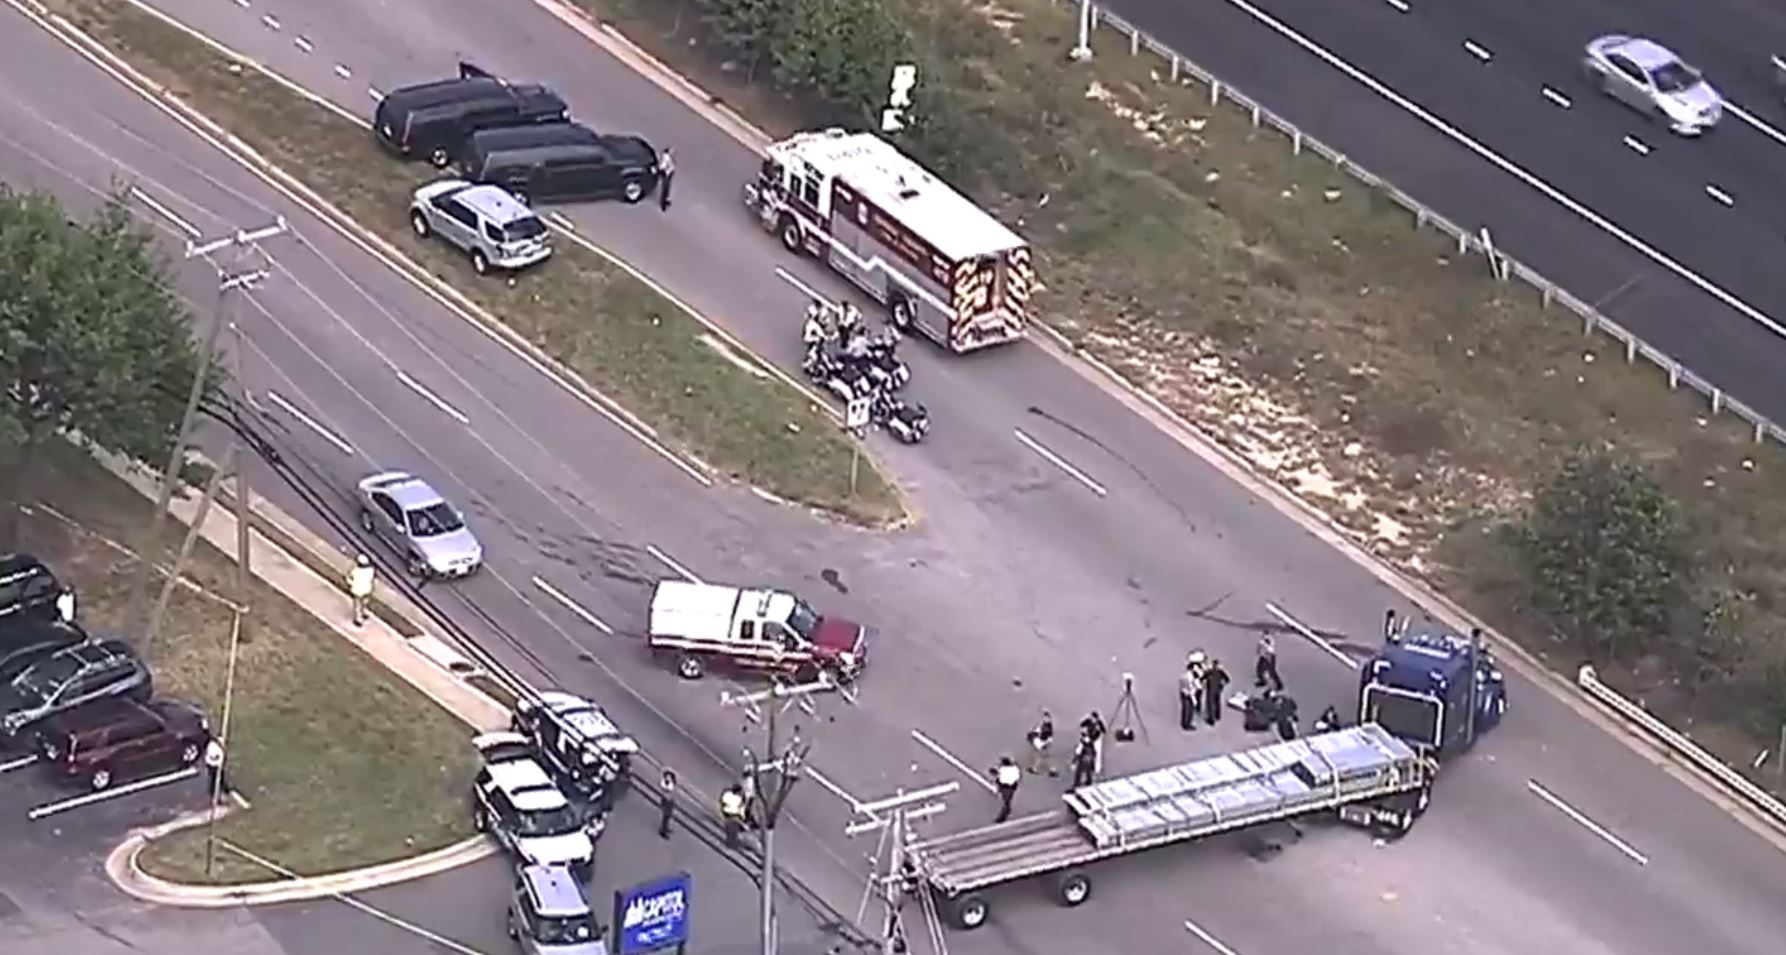 A person is dead after a motorcycle and a tractor trailer collided in Fairfax County Tuesday afternoon, according to authorities. (SkyTrak7)